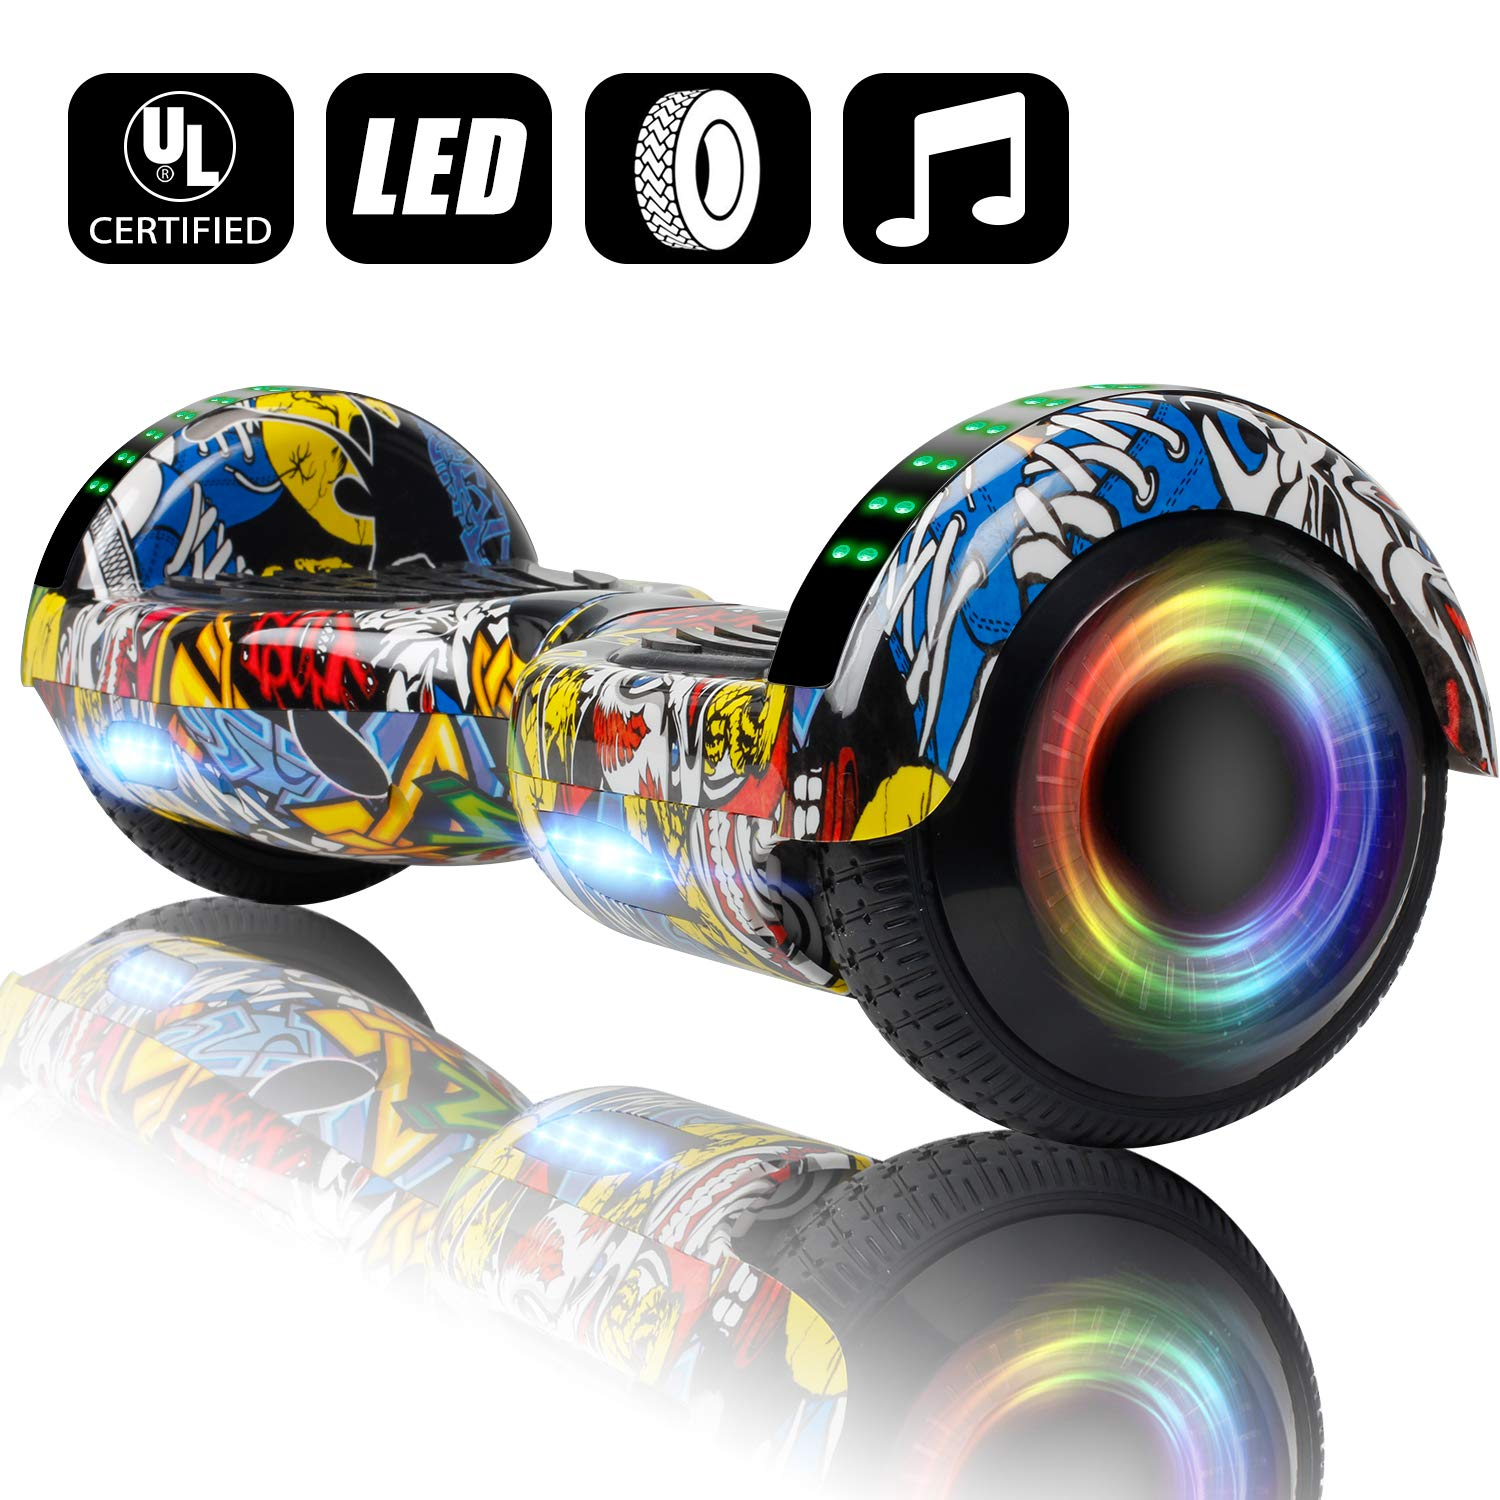 VEVELINE Hoverboard UL2272 Certified 6.5 inch Self Balancing Scooter with Colorful Flash Wheel Top LED Light, Built-in Bluetooth Speaker,Hover Board for Kids Adults Free Carry Bag(Graffiti) by VEVELINE